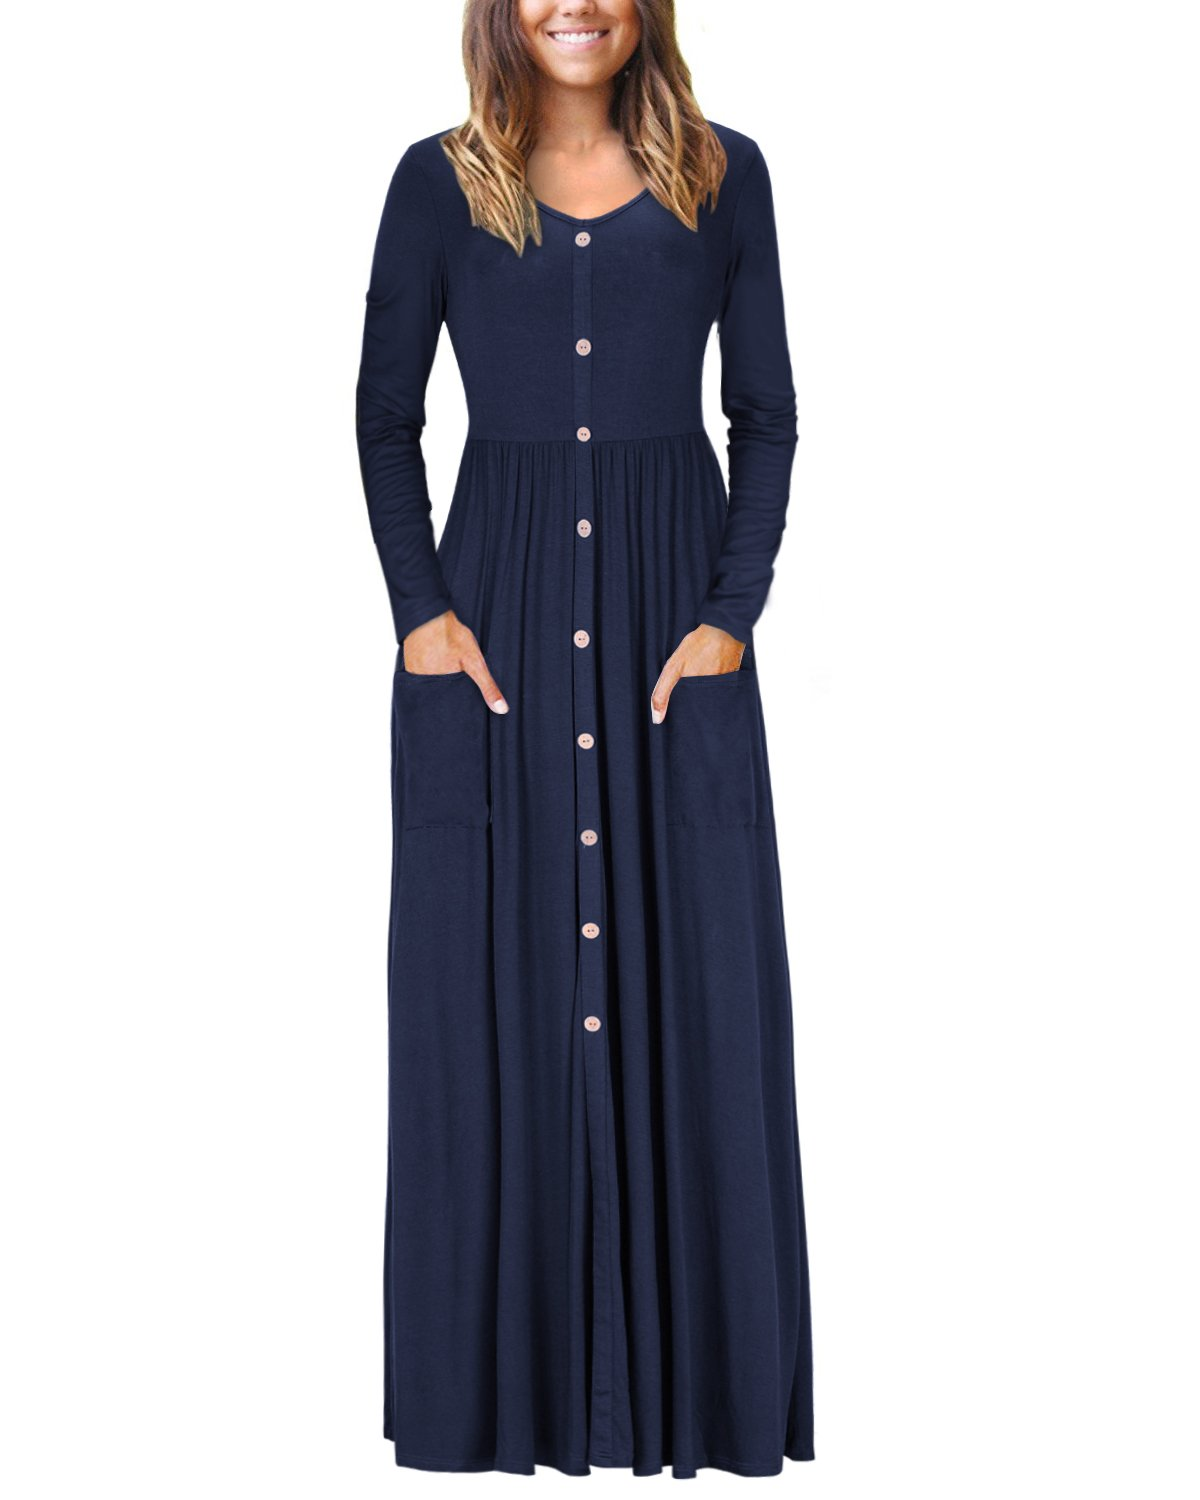 VOTEPRETTY Women's V-Neck Long Sleeve Casual Loose Maxi Long Dress with Pockets(Navy,L)